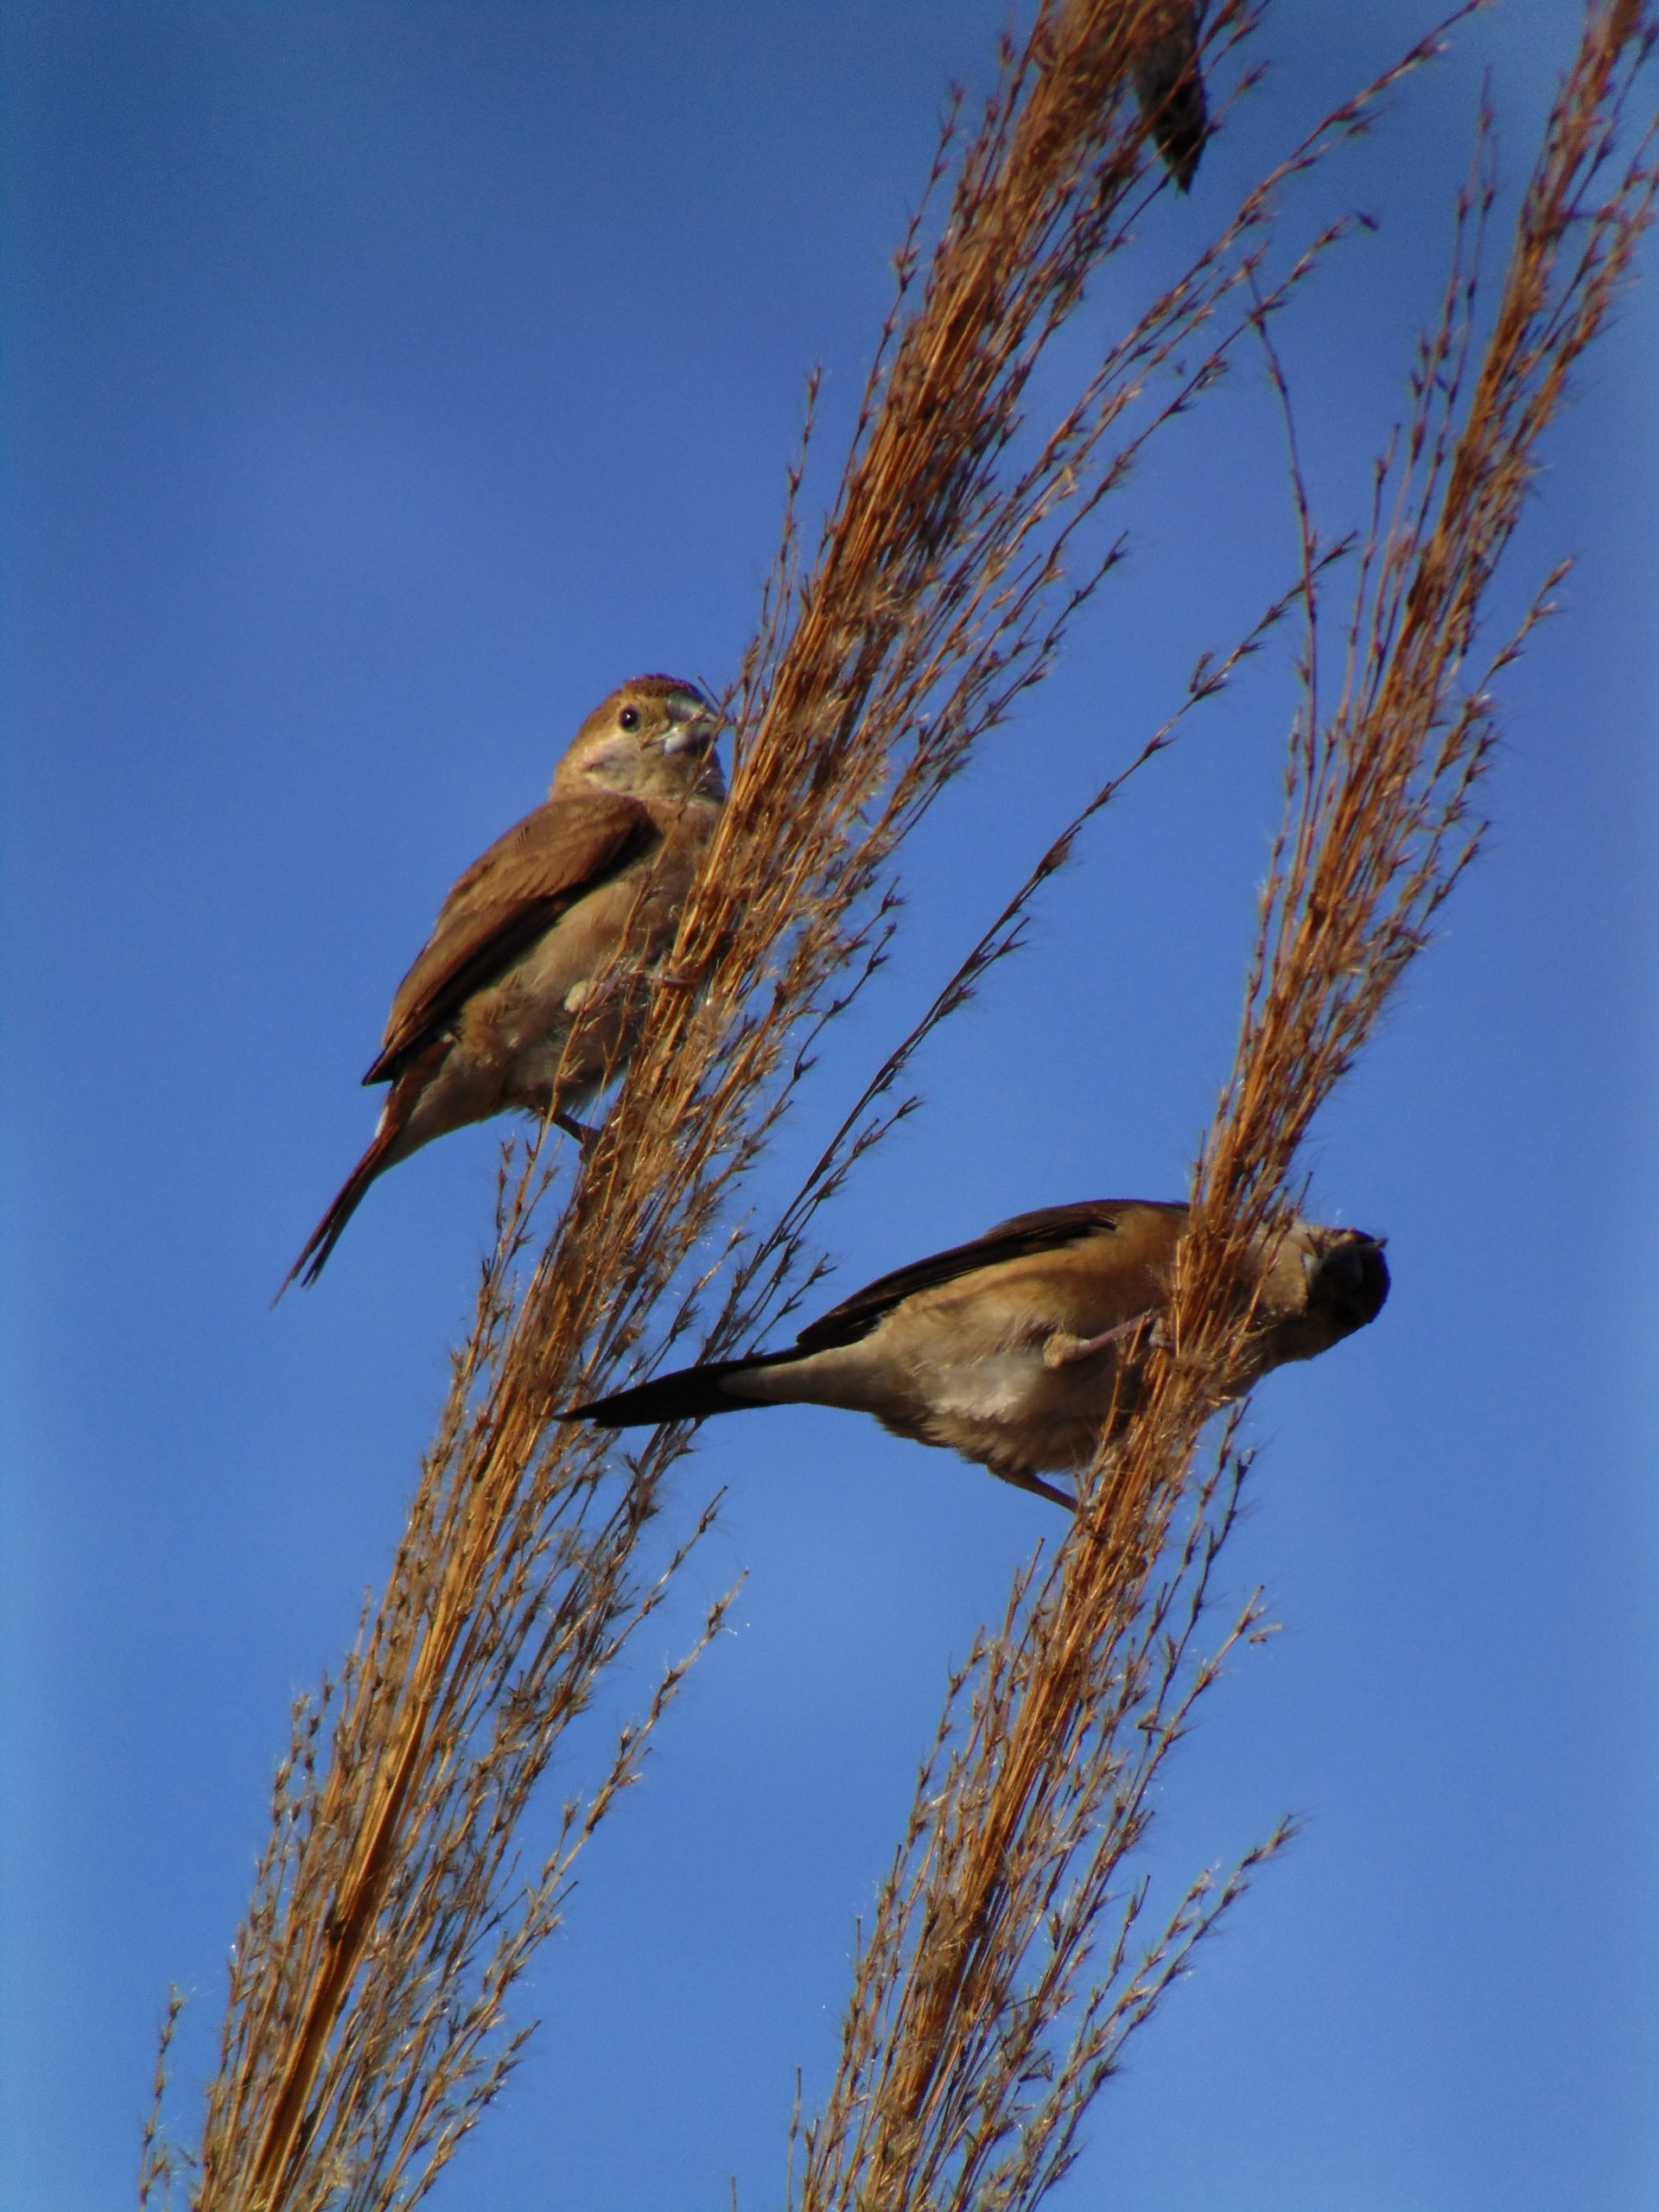 Sparrows sitting on a dried hay